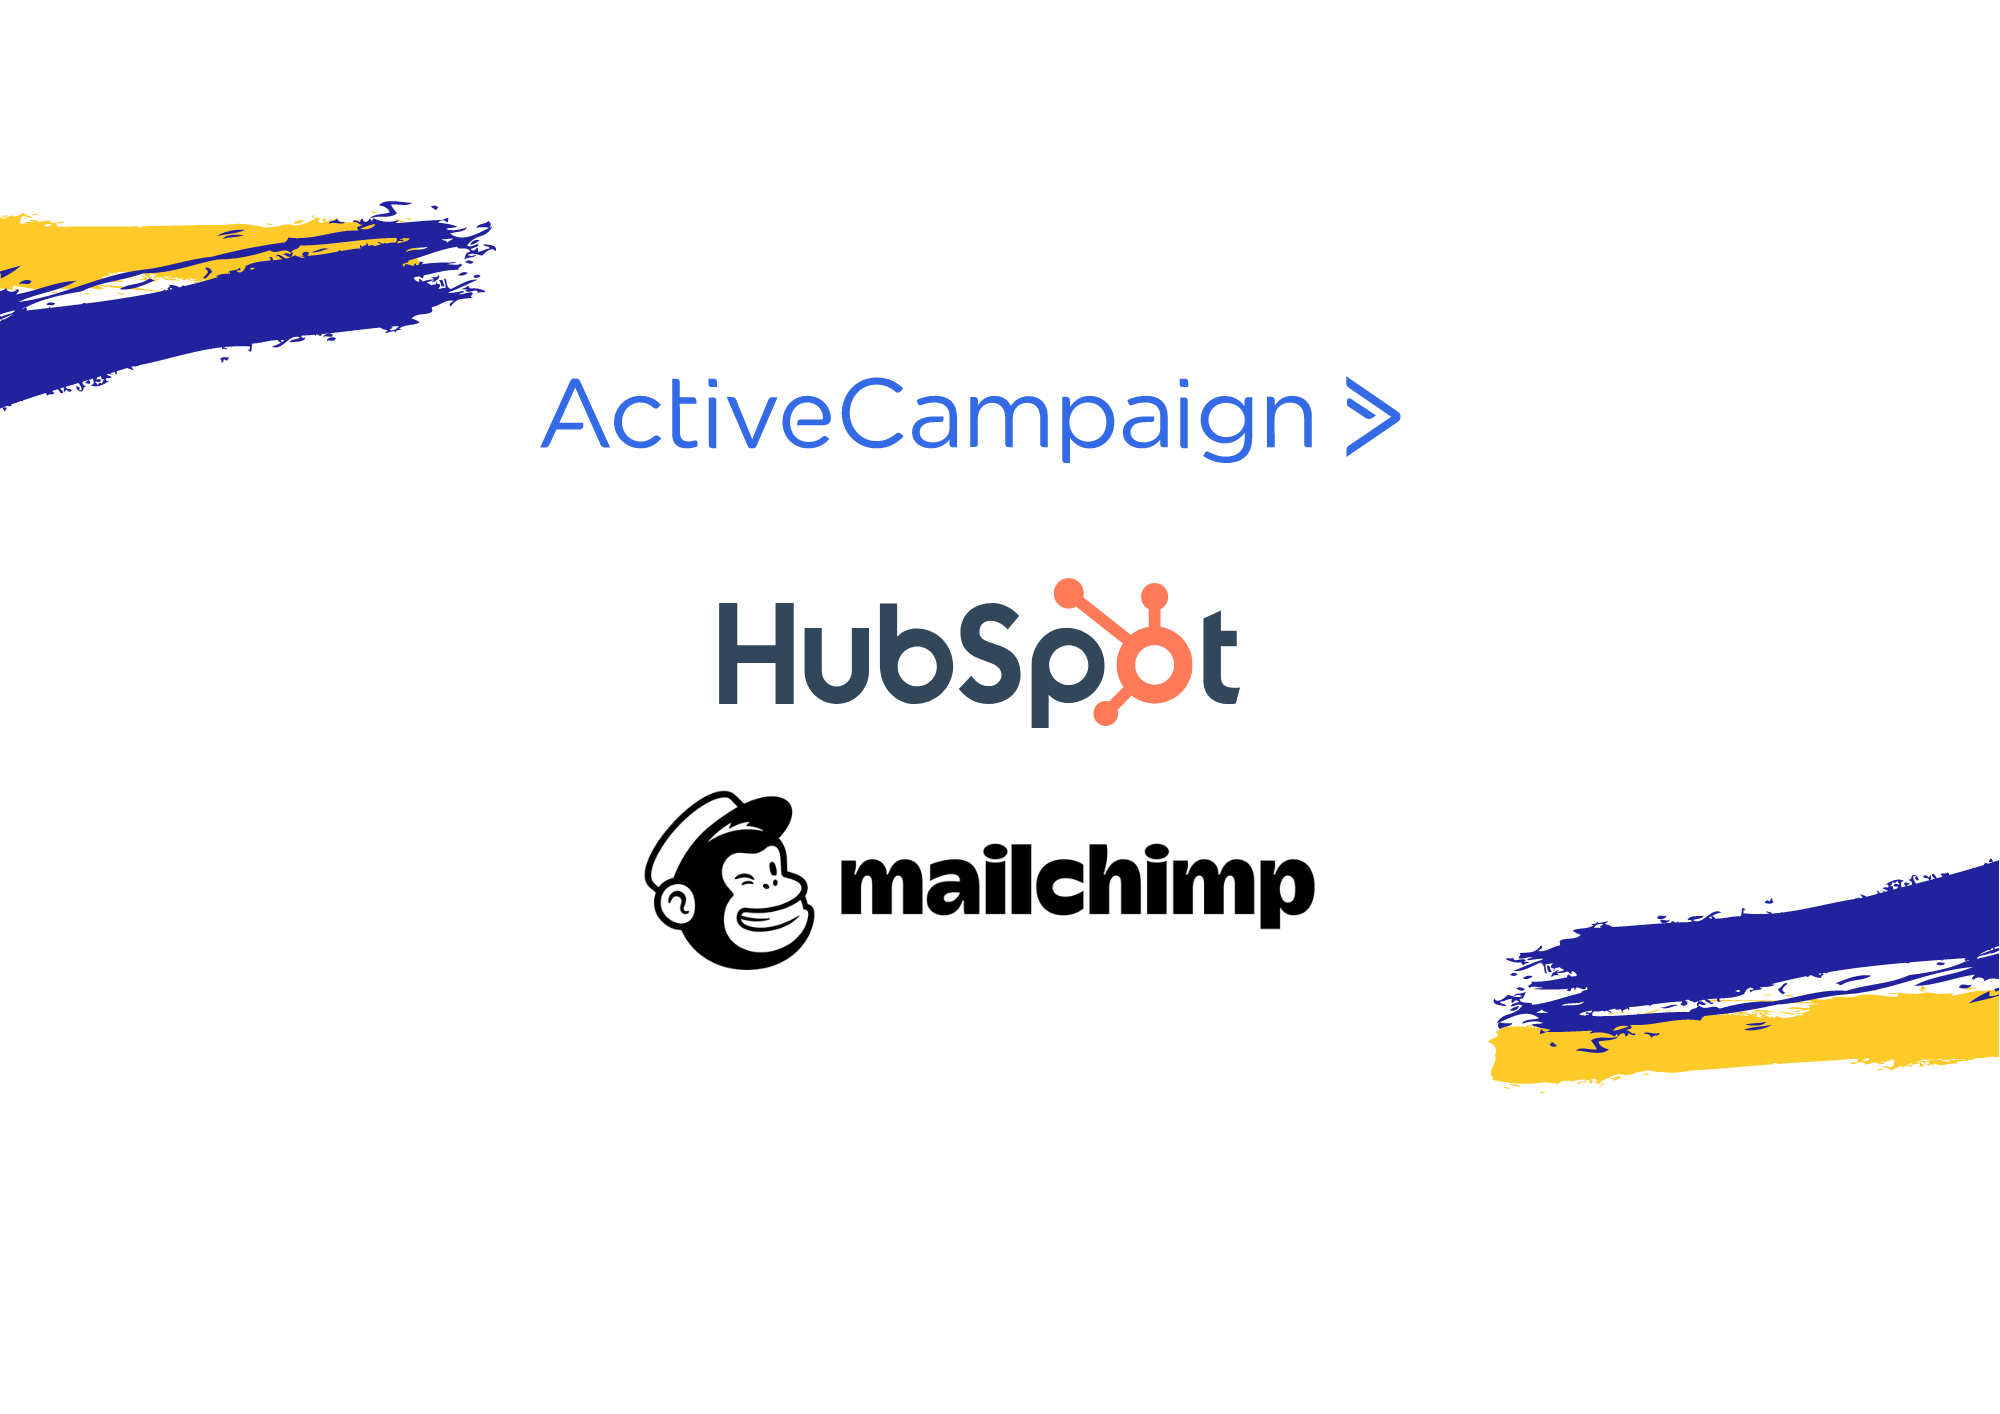 Email content promotion tools